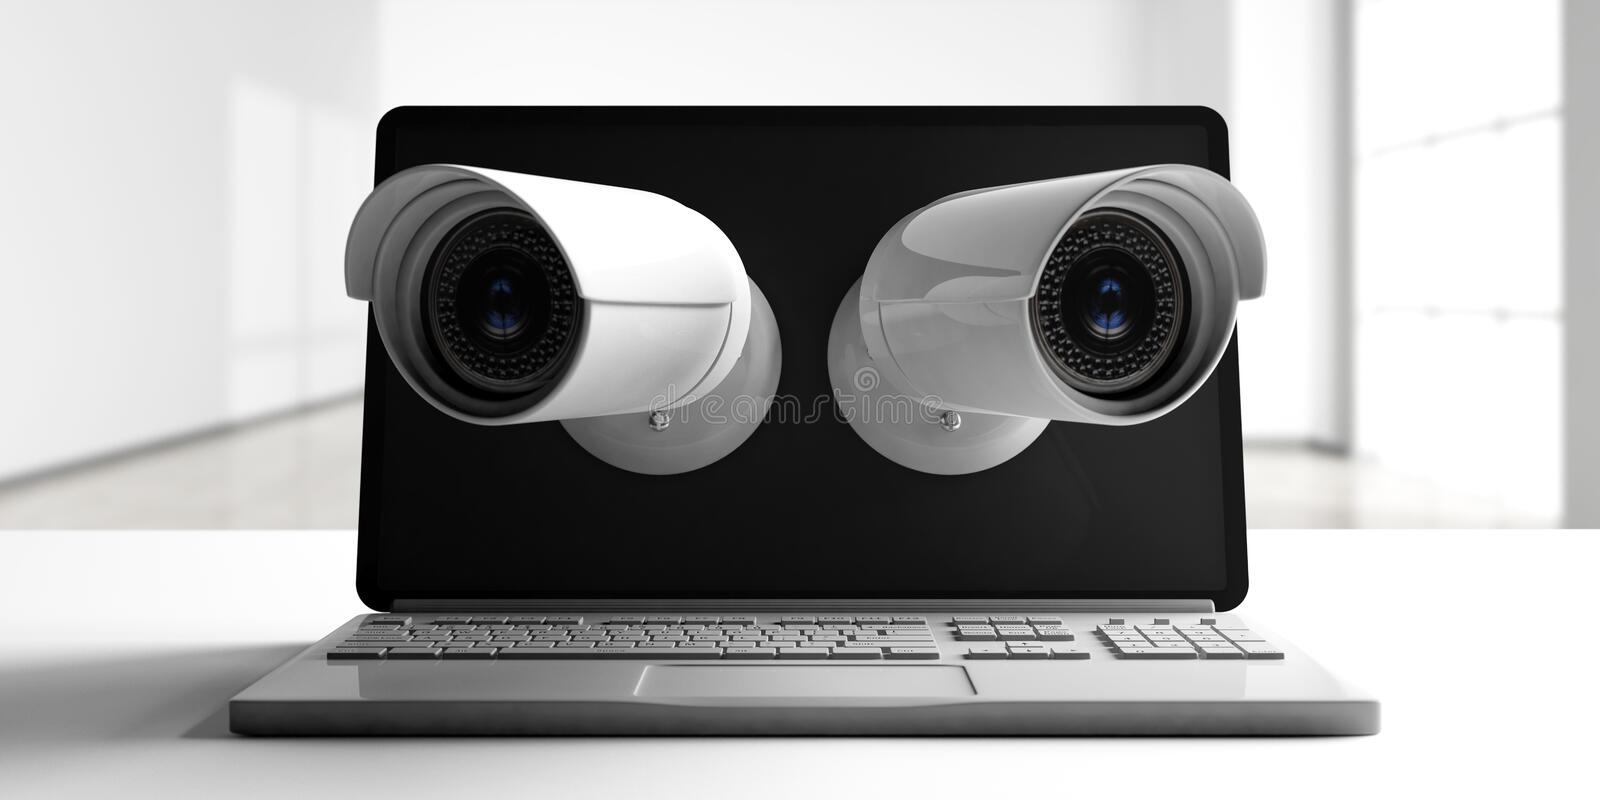 Security Cameras CCTV on a computer laptop screen screen, blur empty room background. 3d illustration vector illustration